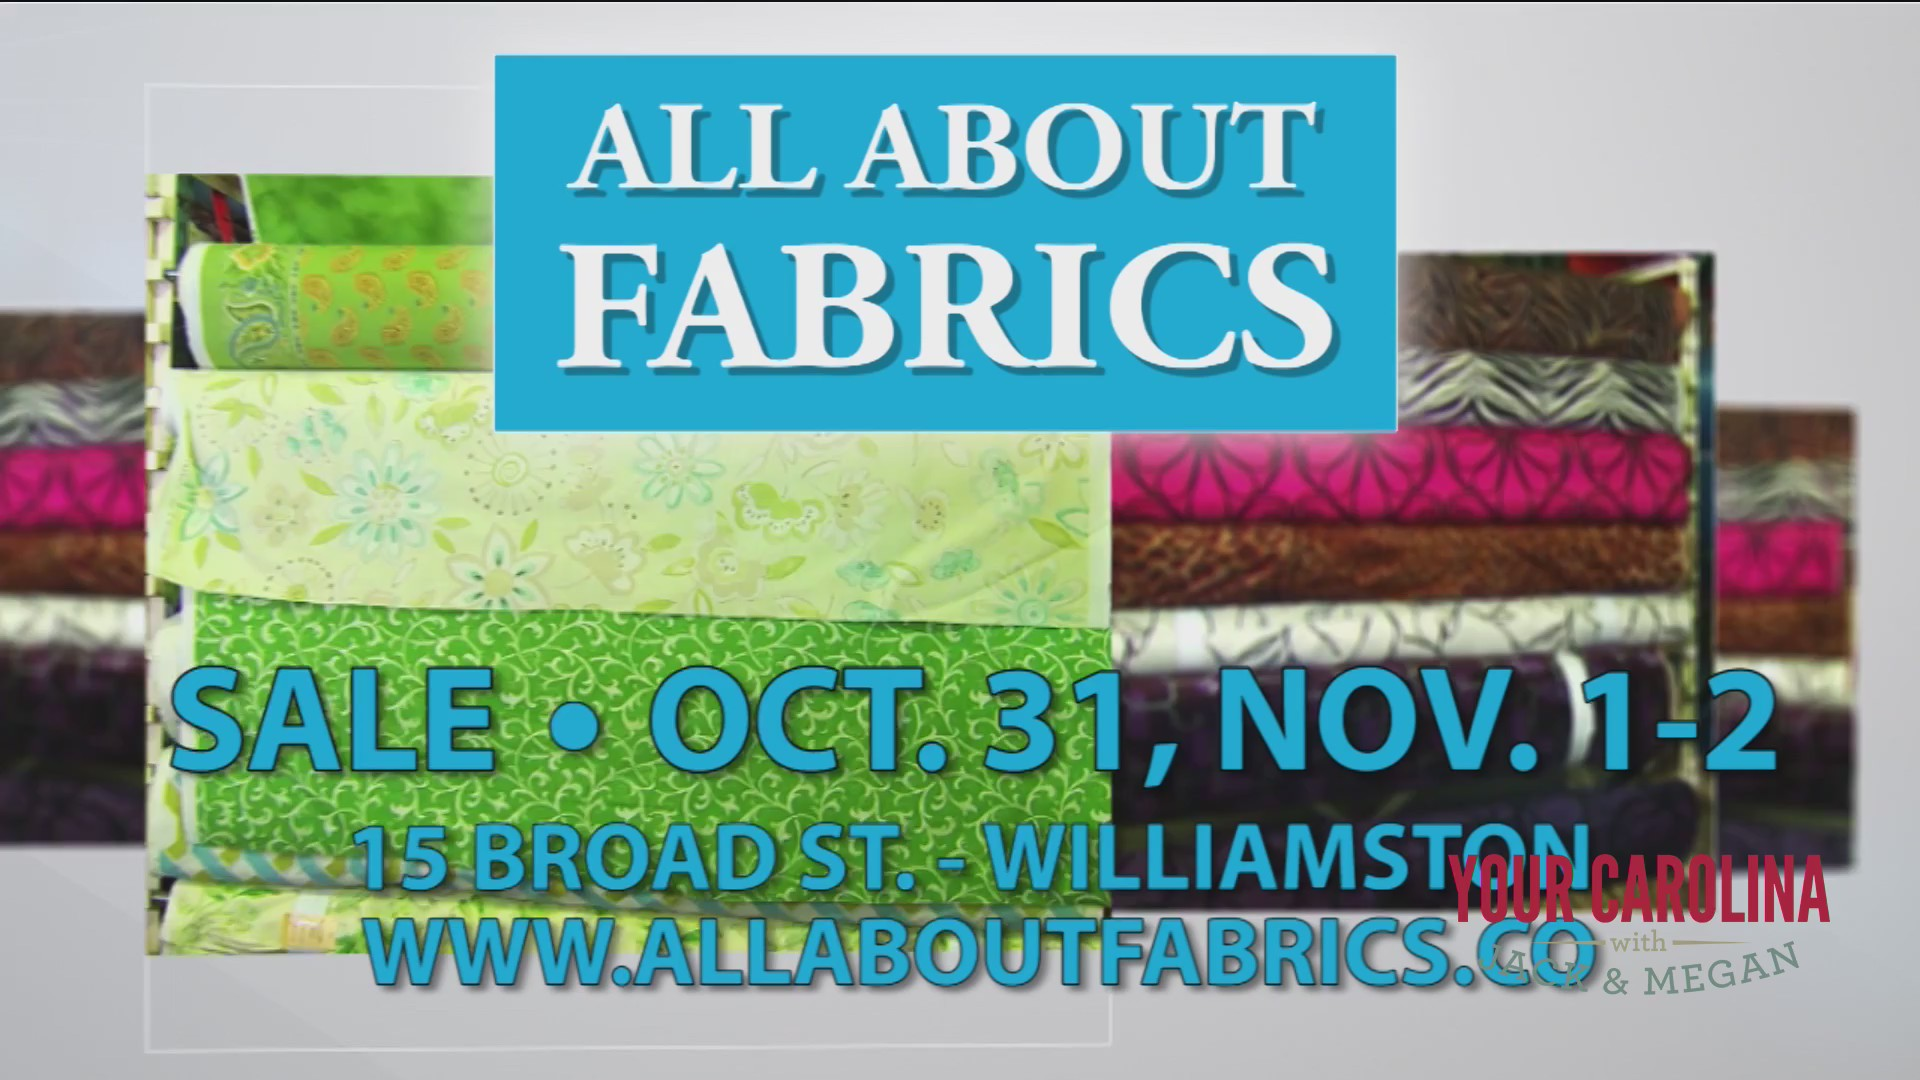 All About Fabrics Open Three Days Only